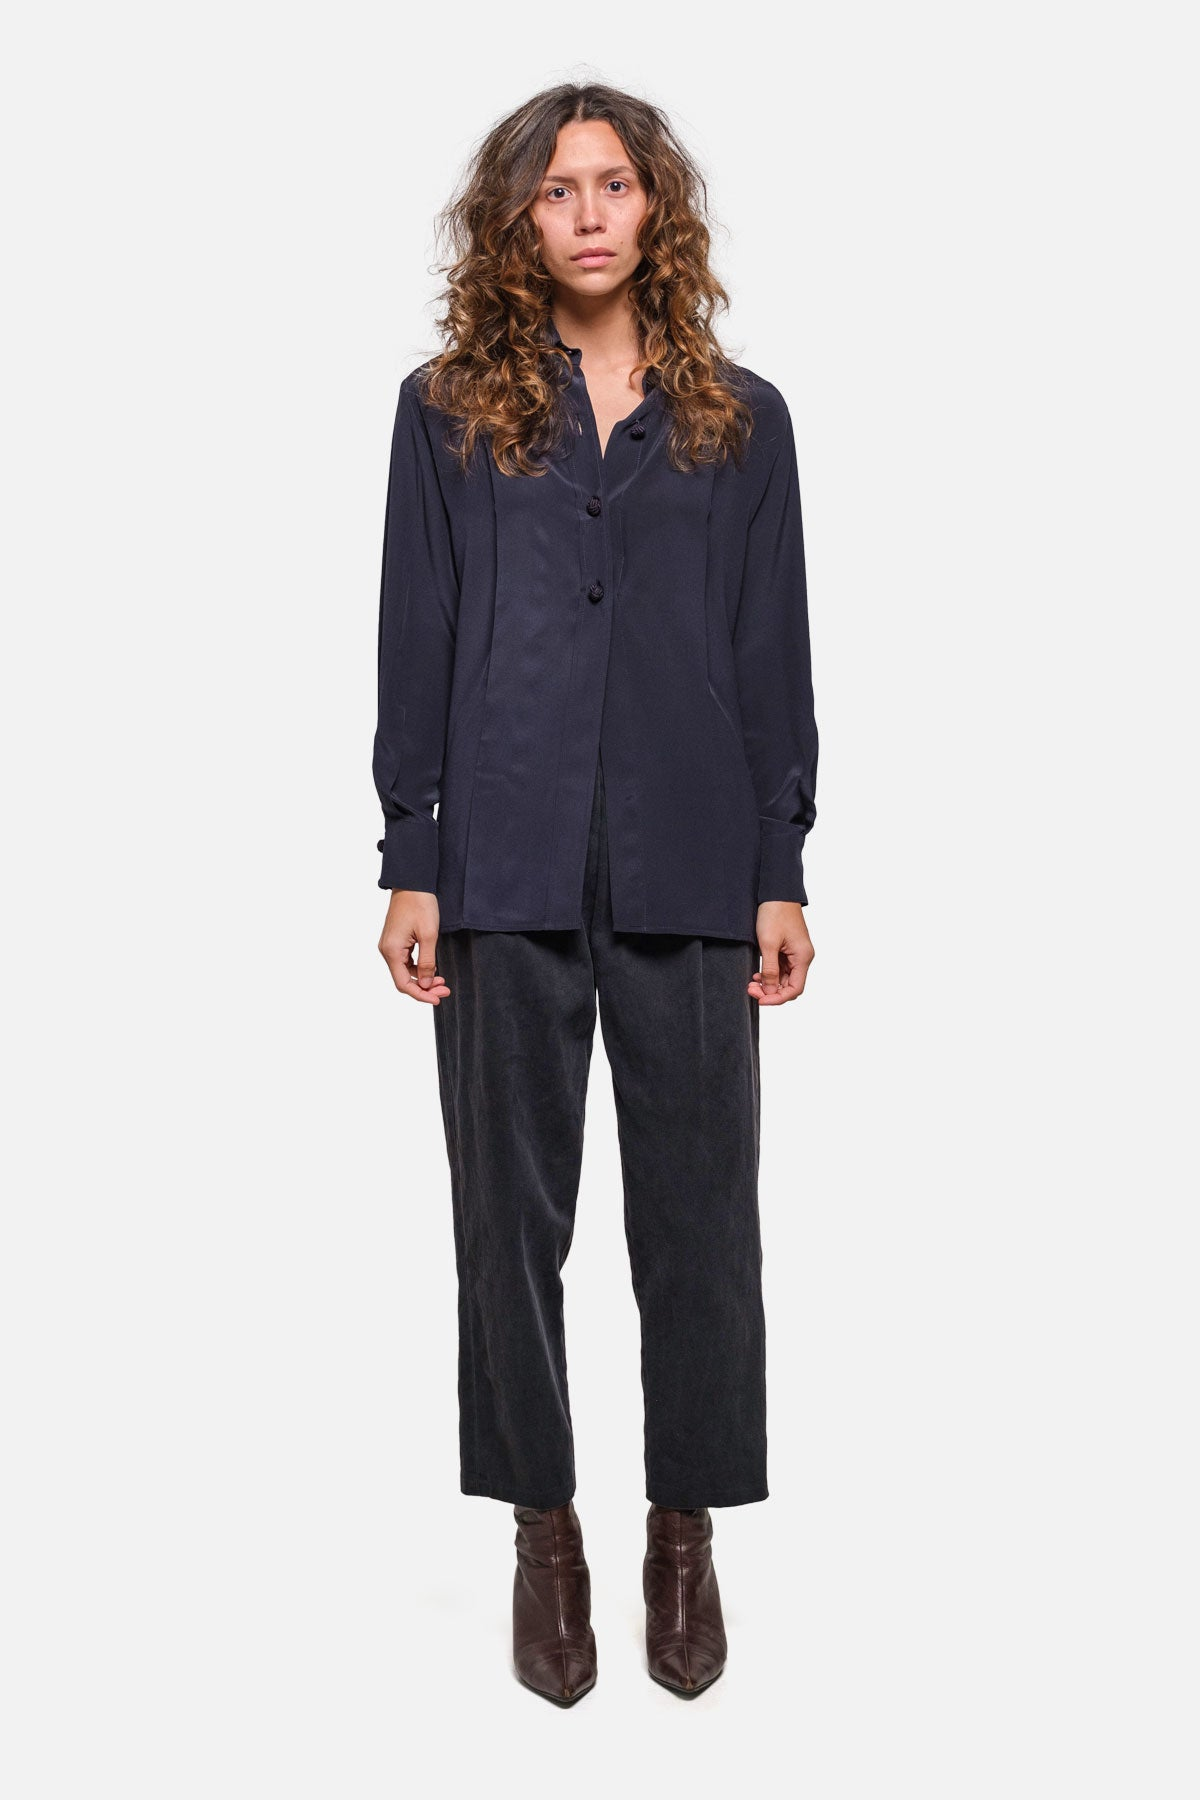 DRE BLOUSE IN NAVY SILK - Fortune Goods